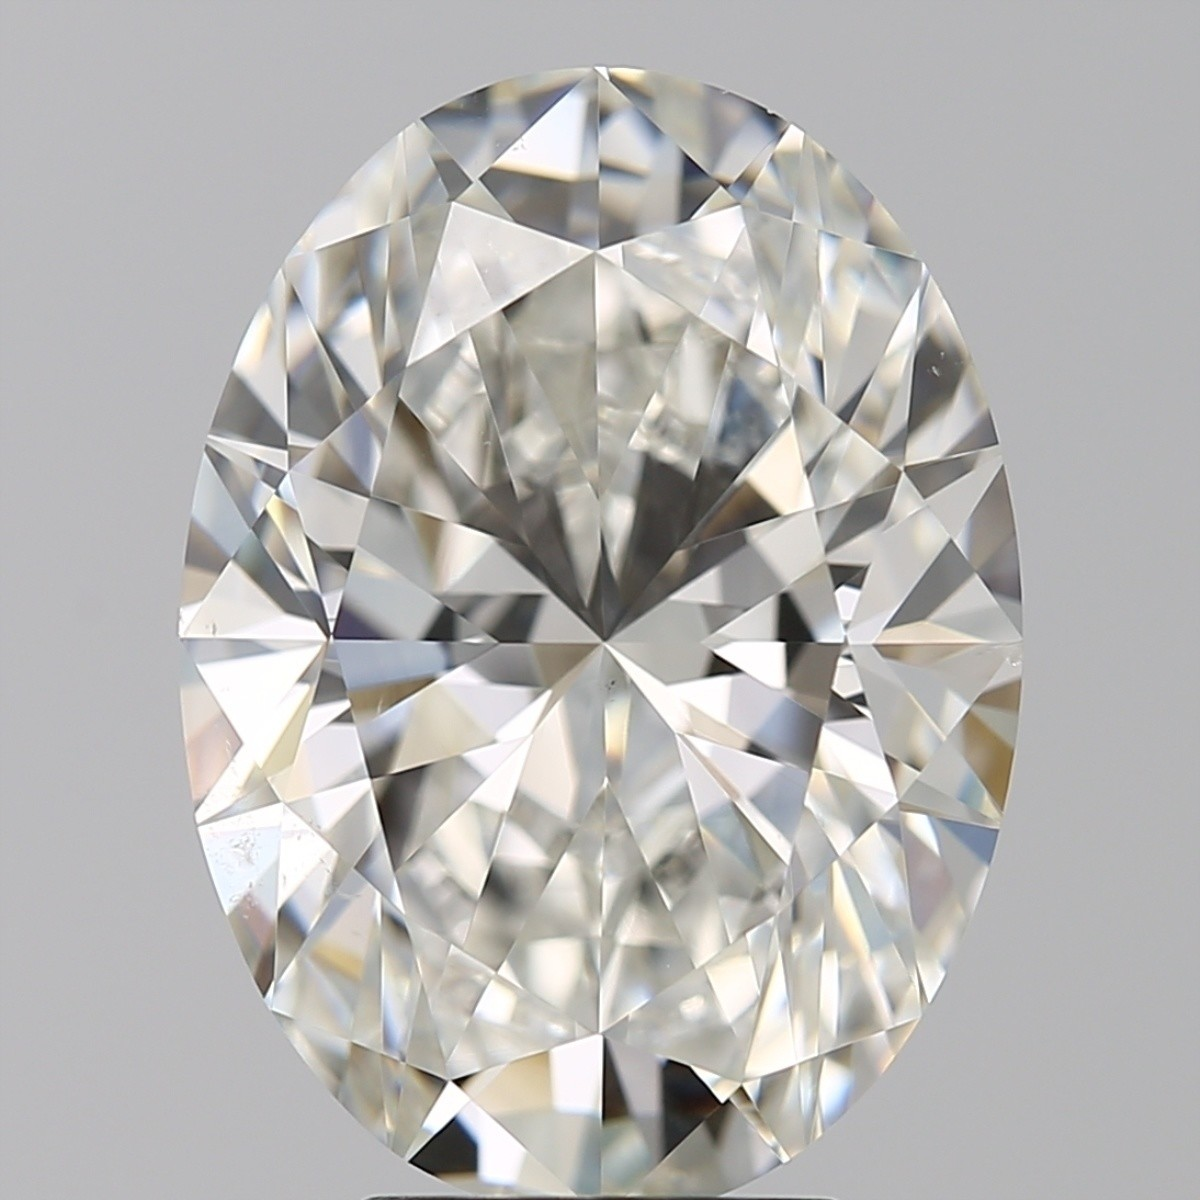 5.15 Carat Oval Diamond (H/VS2)